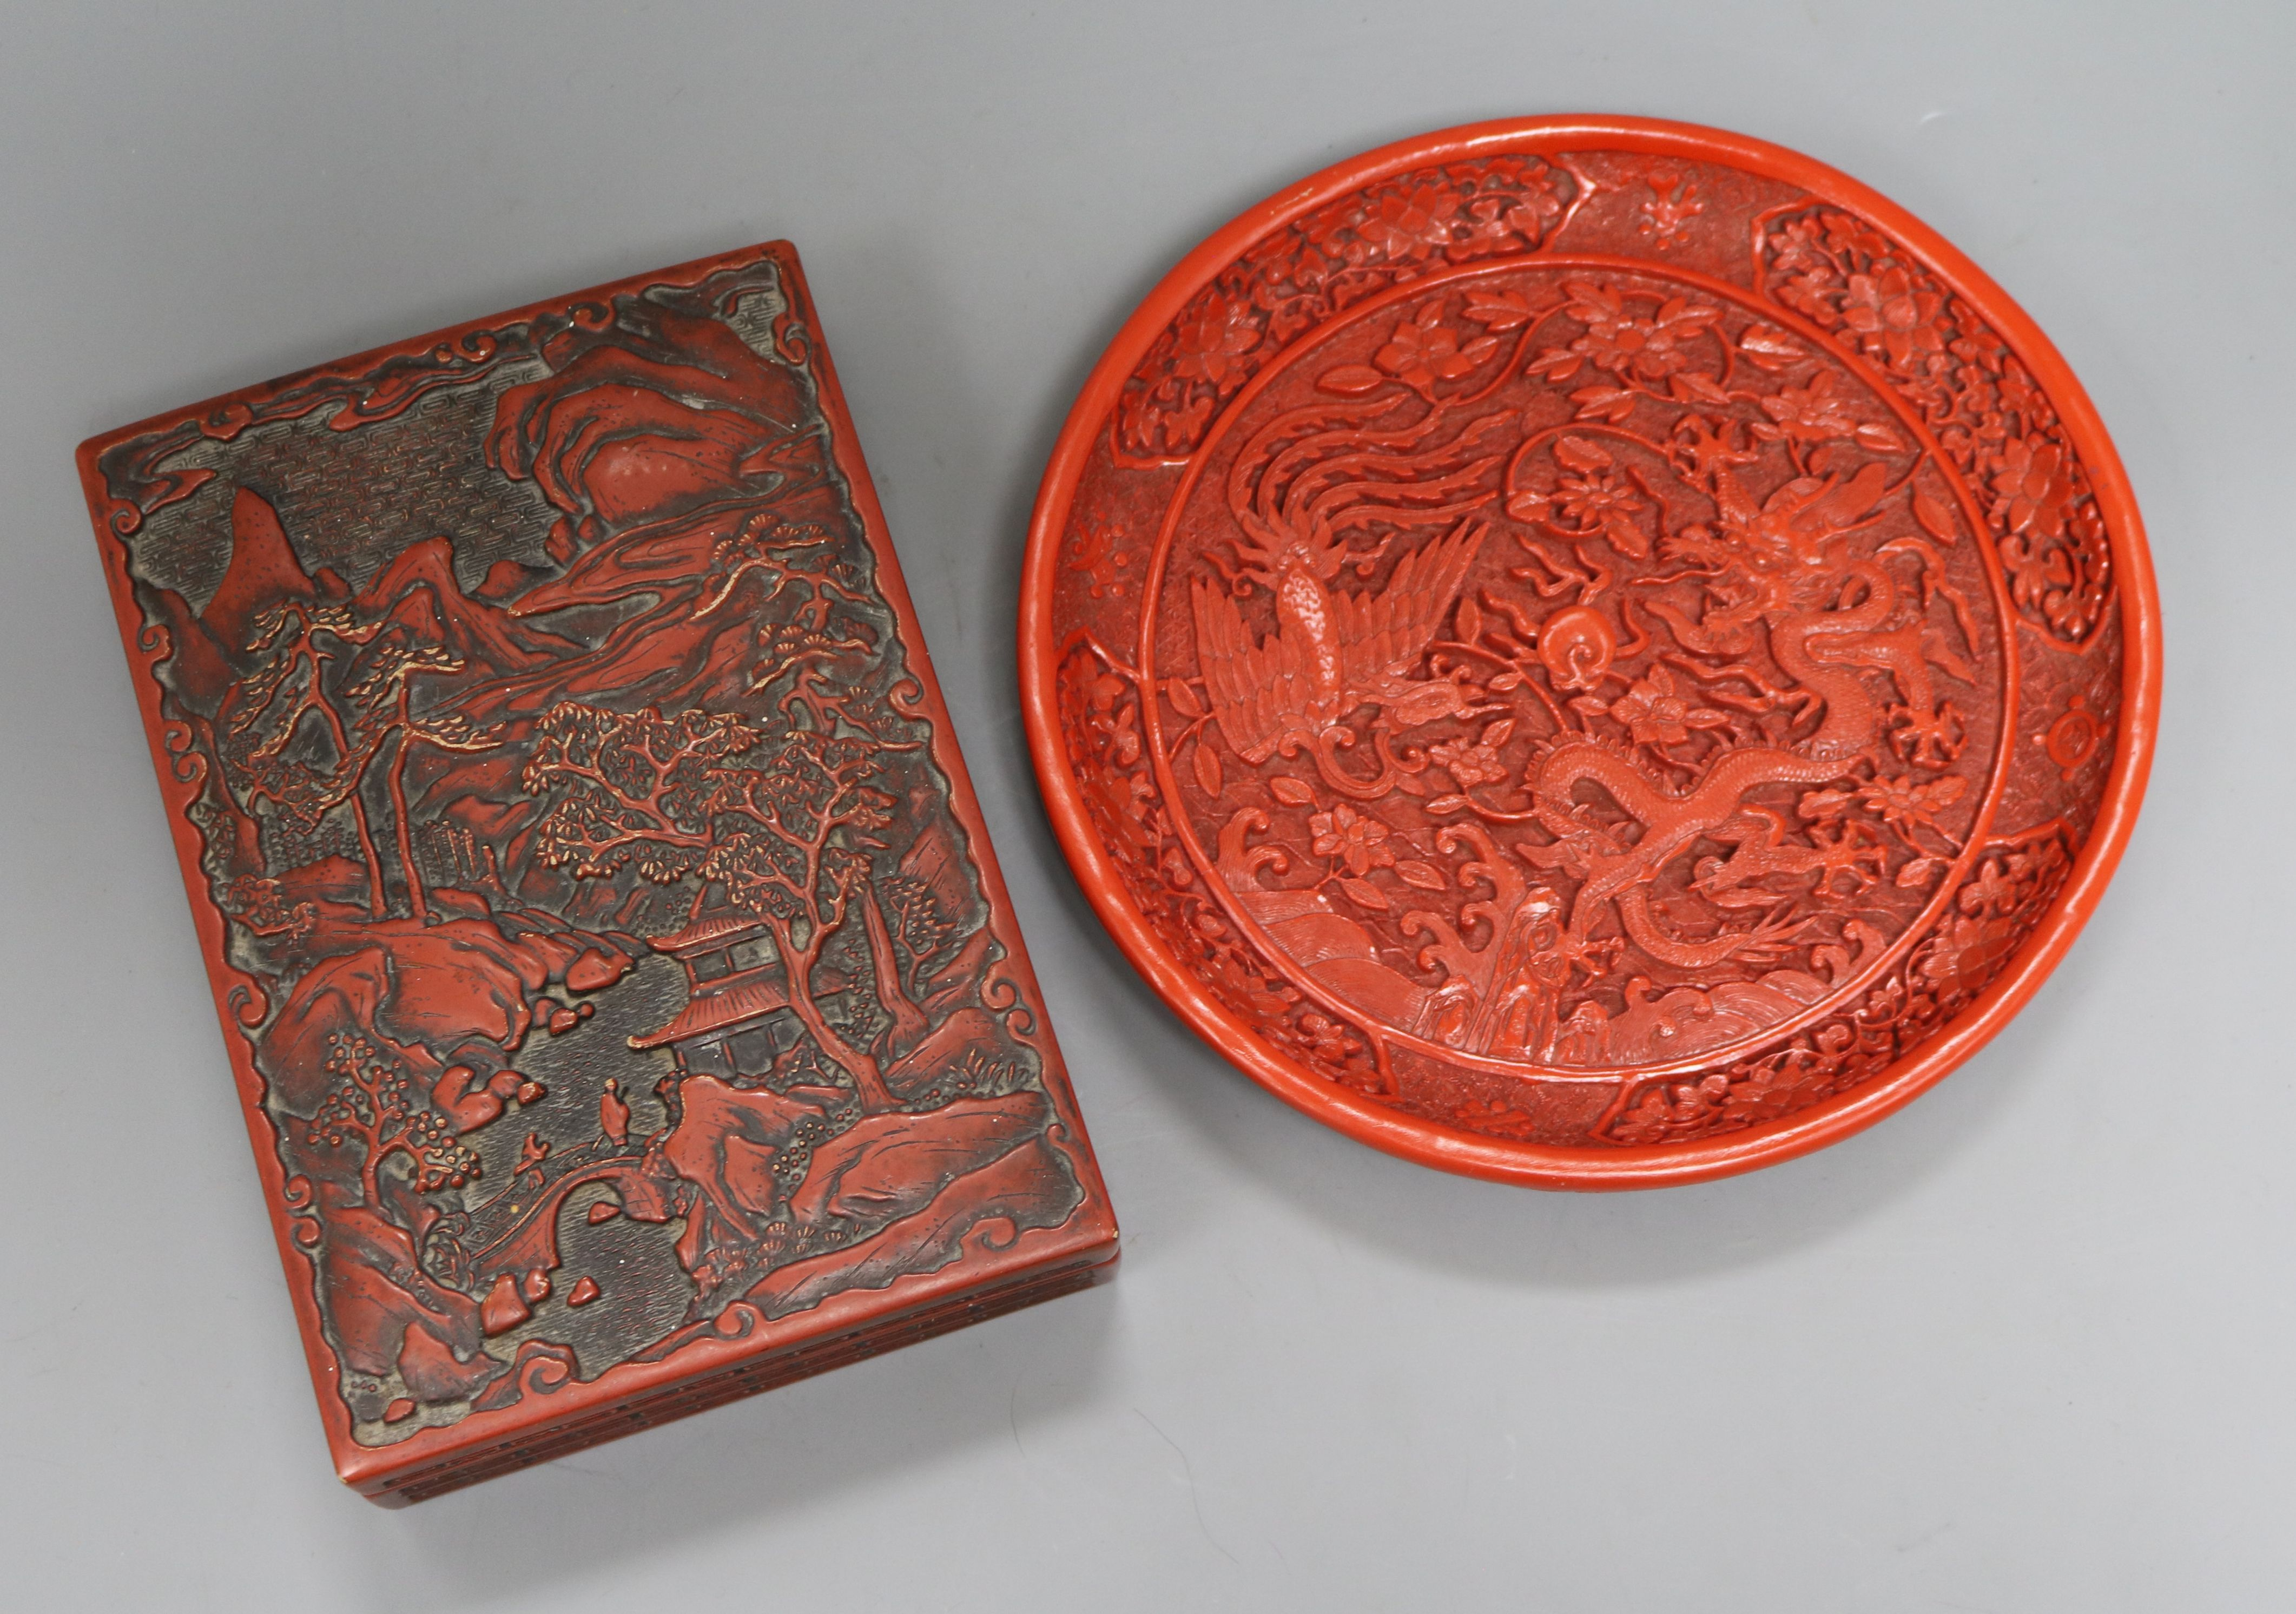 Lot 42 - A Chinese box and cover and a circular dish